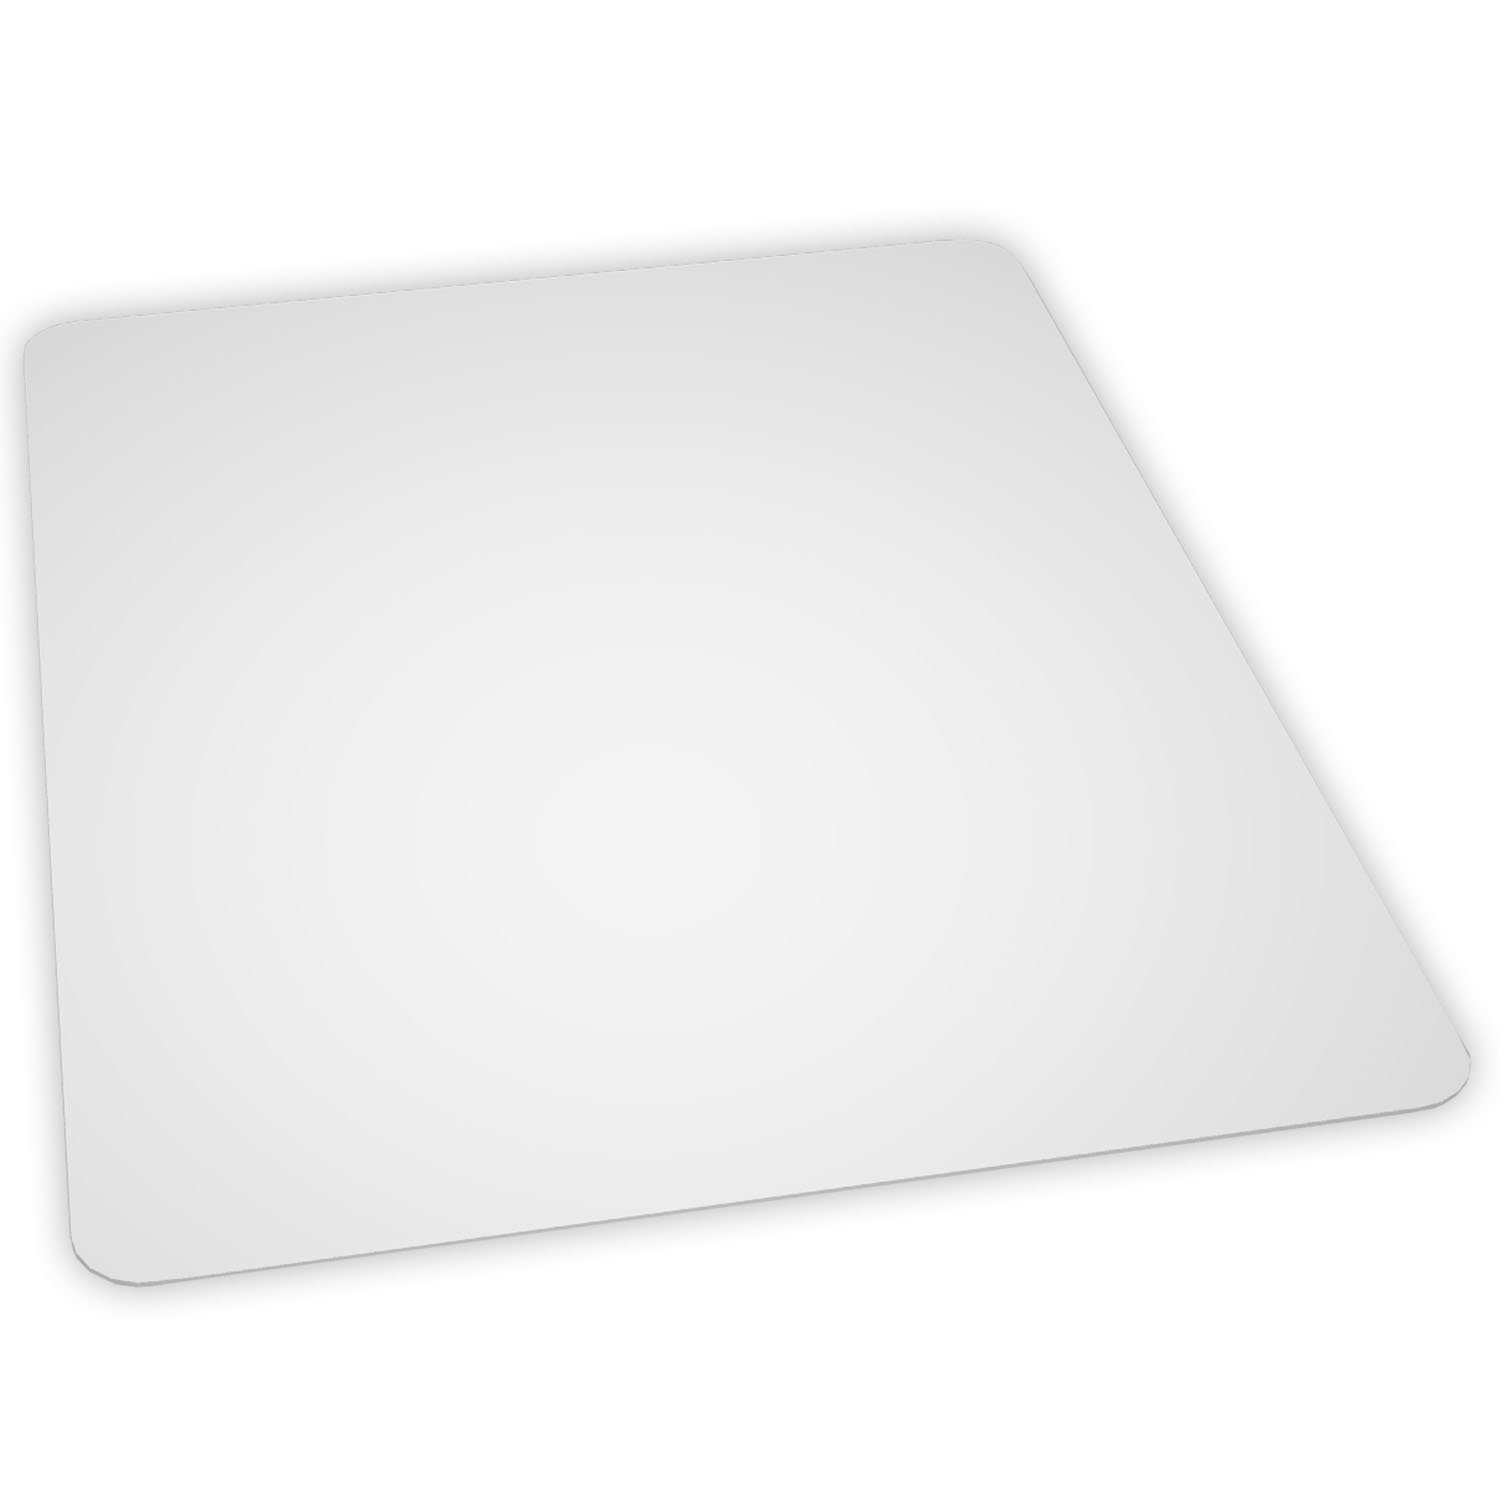 ES Robbins EverLife Hard Floor Rectangle Vinyl Chair Mat, 36 by 48-Inch, Clear 132021